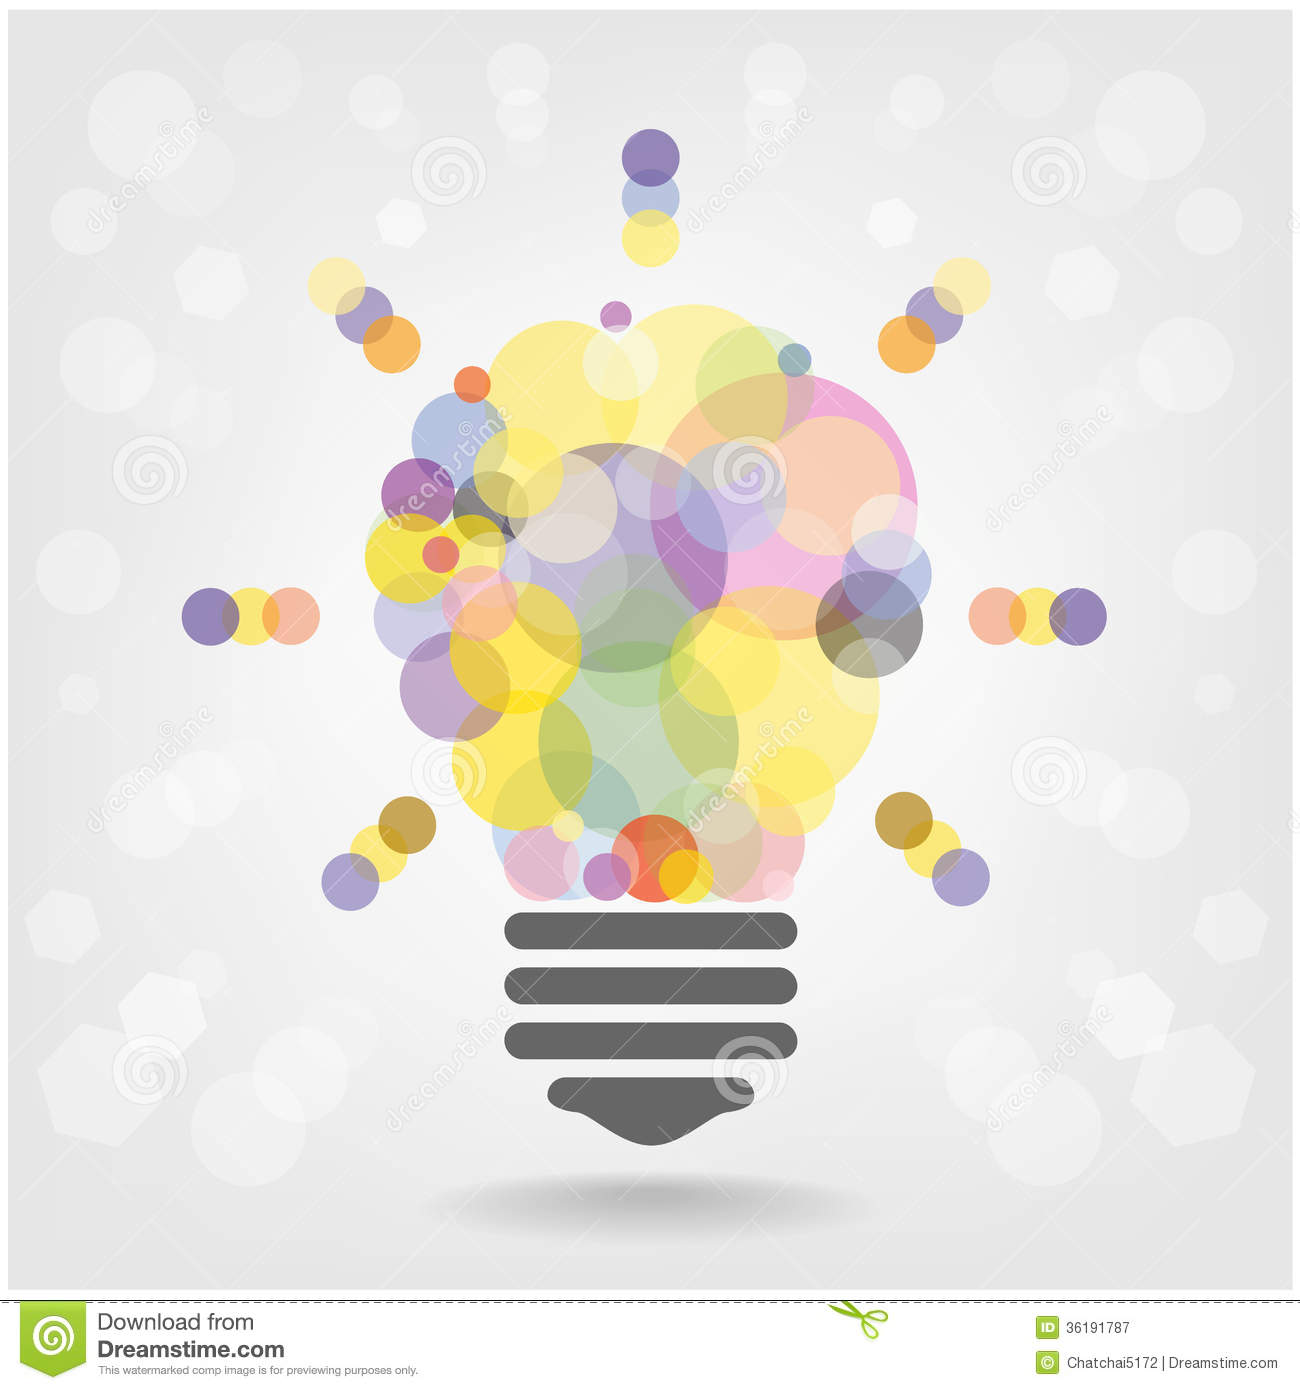 creative light bulb idea concept background design stock vector